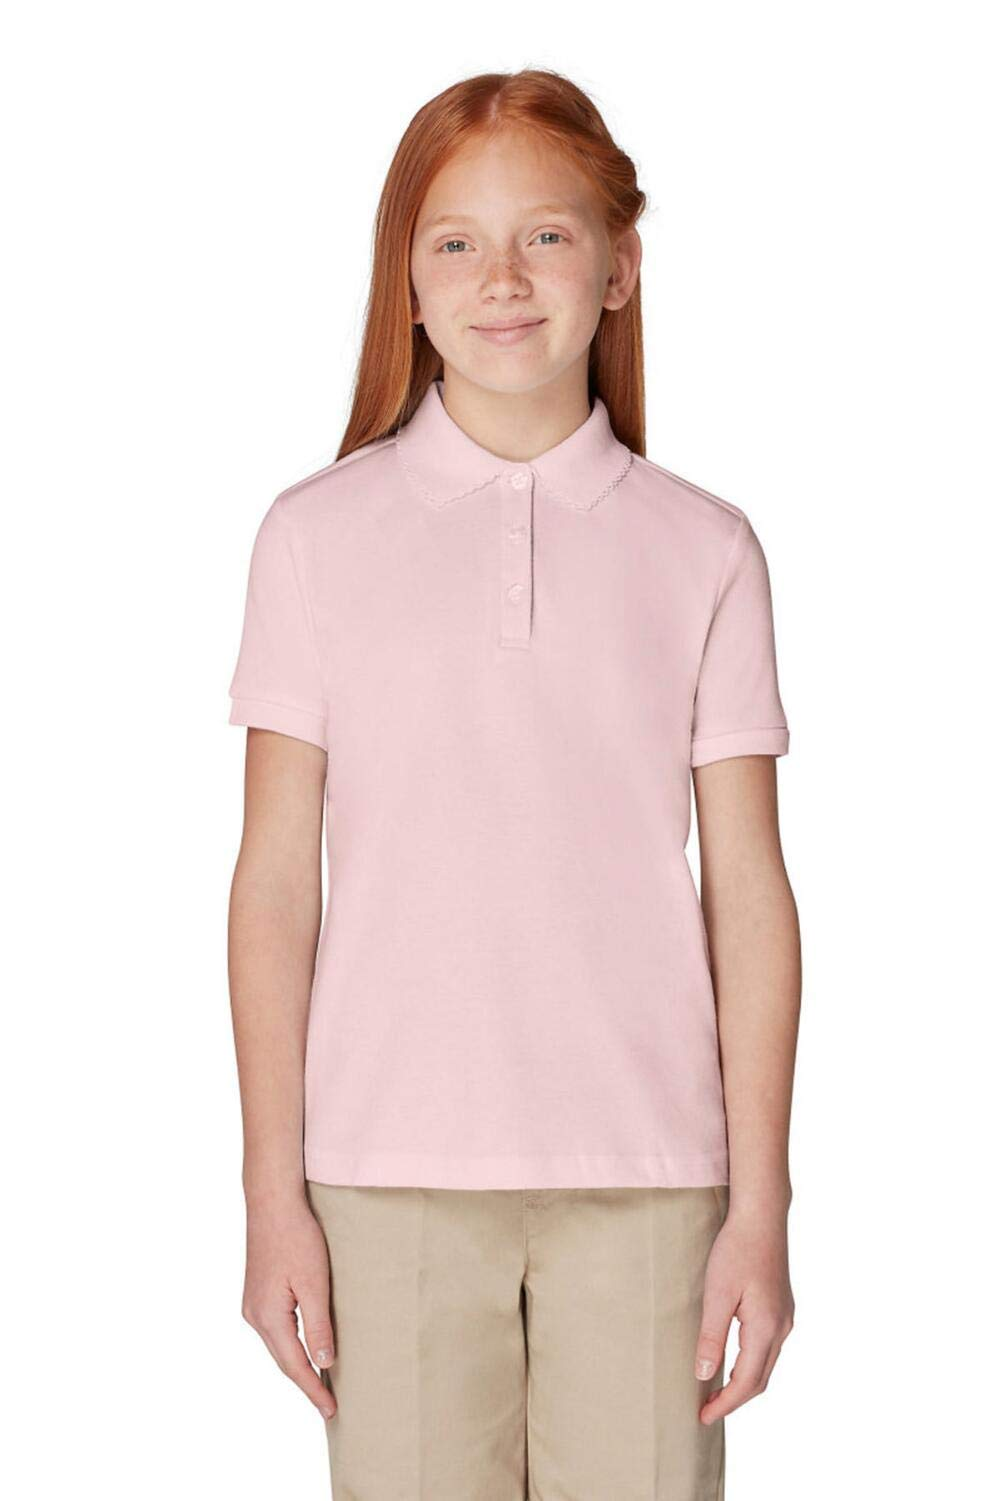 French Toast Big Girls' Short Sleeve Interlock Polo with Picot Collar, Pink, Large/10/12